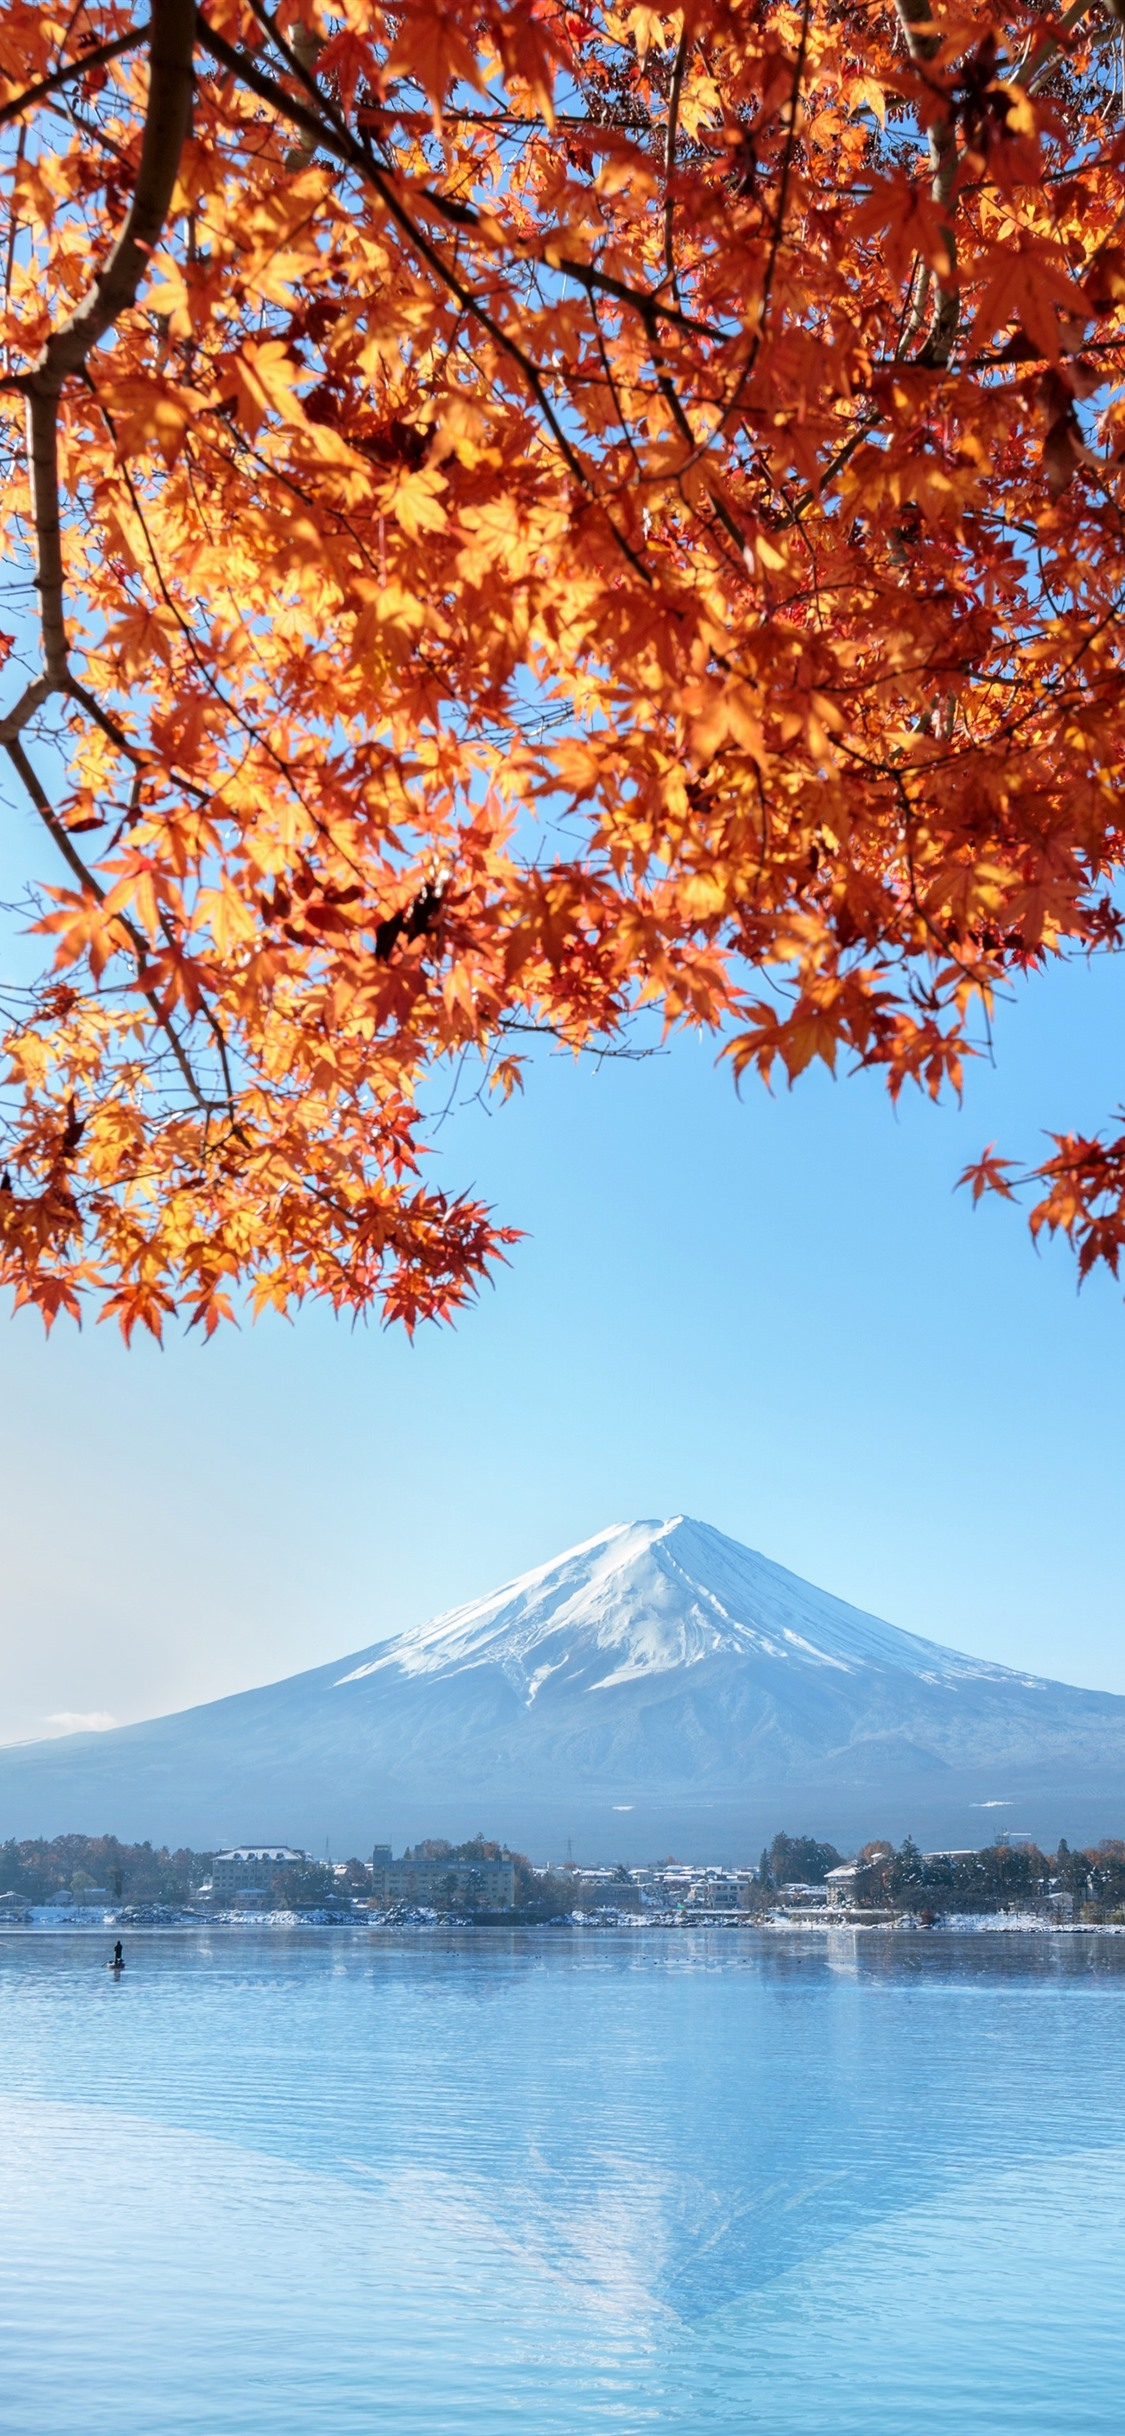 Fuji Mountain Red Maple Leaves Lake Autumn Japan 1242x2688 Iphone 11 Pro Xs Max Wallpaper Background Picture Image